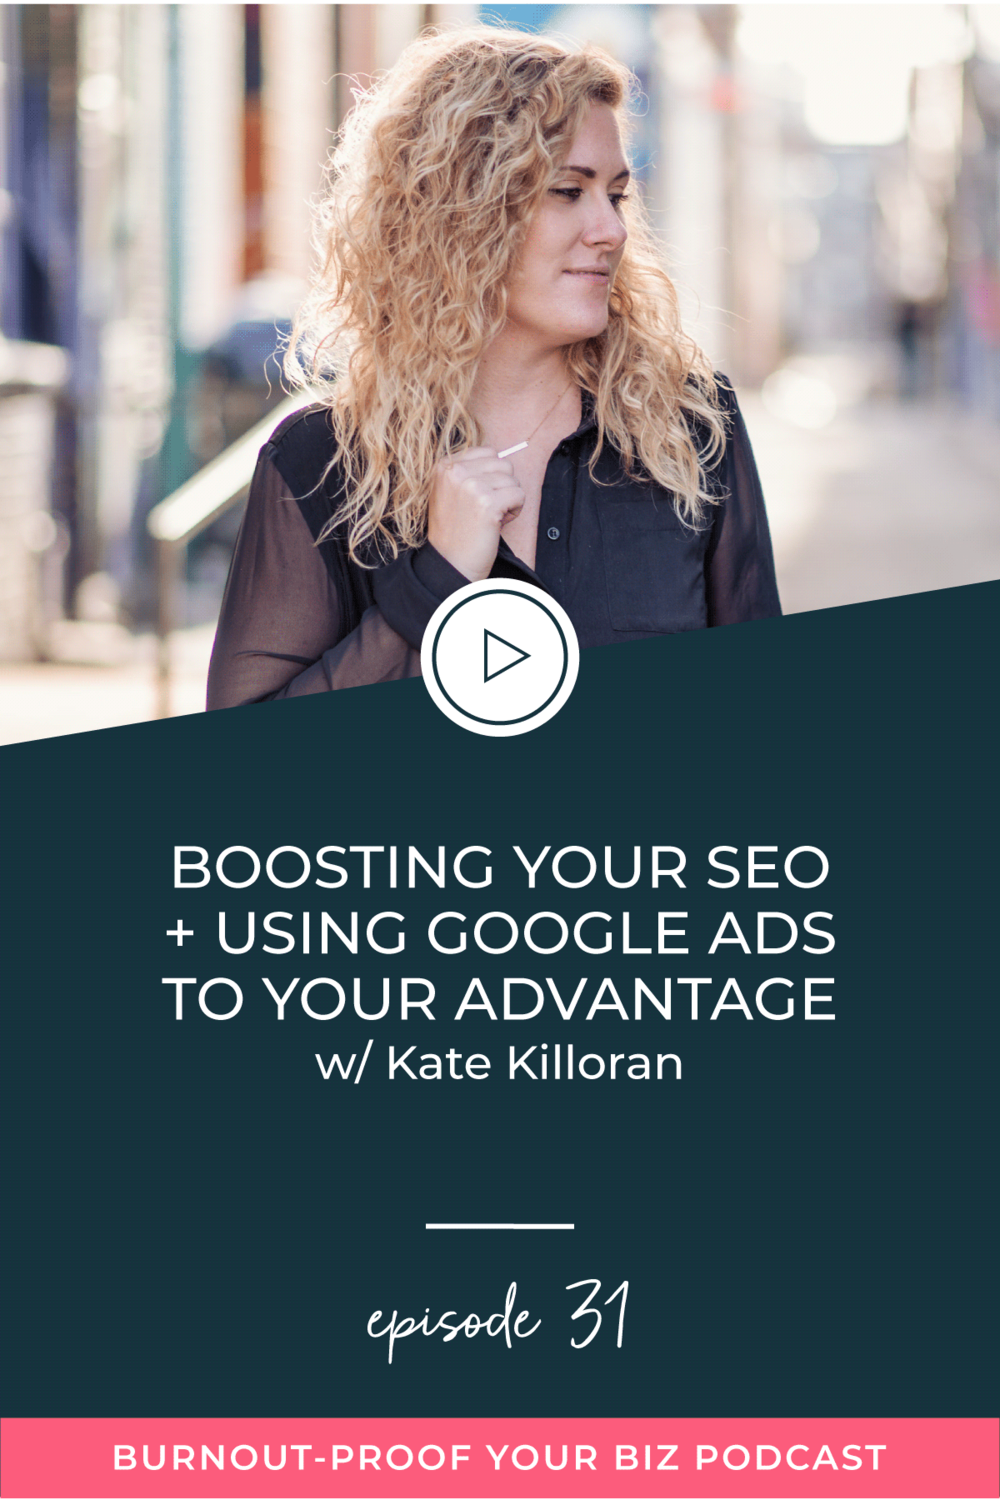 Burnout-Proof Your Biz Podcast with Chelsea B Foster | Episode 031 - Boosting Your SEO + Using Google Ads to Your Advantage with Kate Killoran | Learn how to run your biz and live your dream life on your own terms without the fear of burnout.